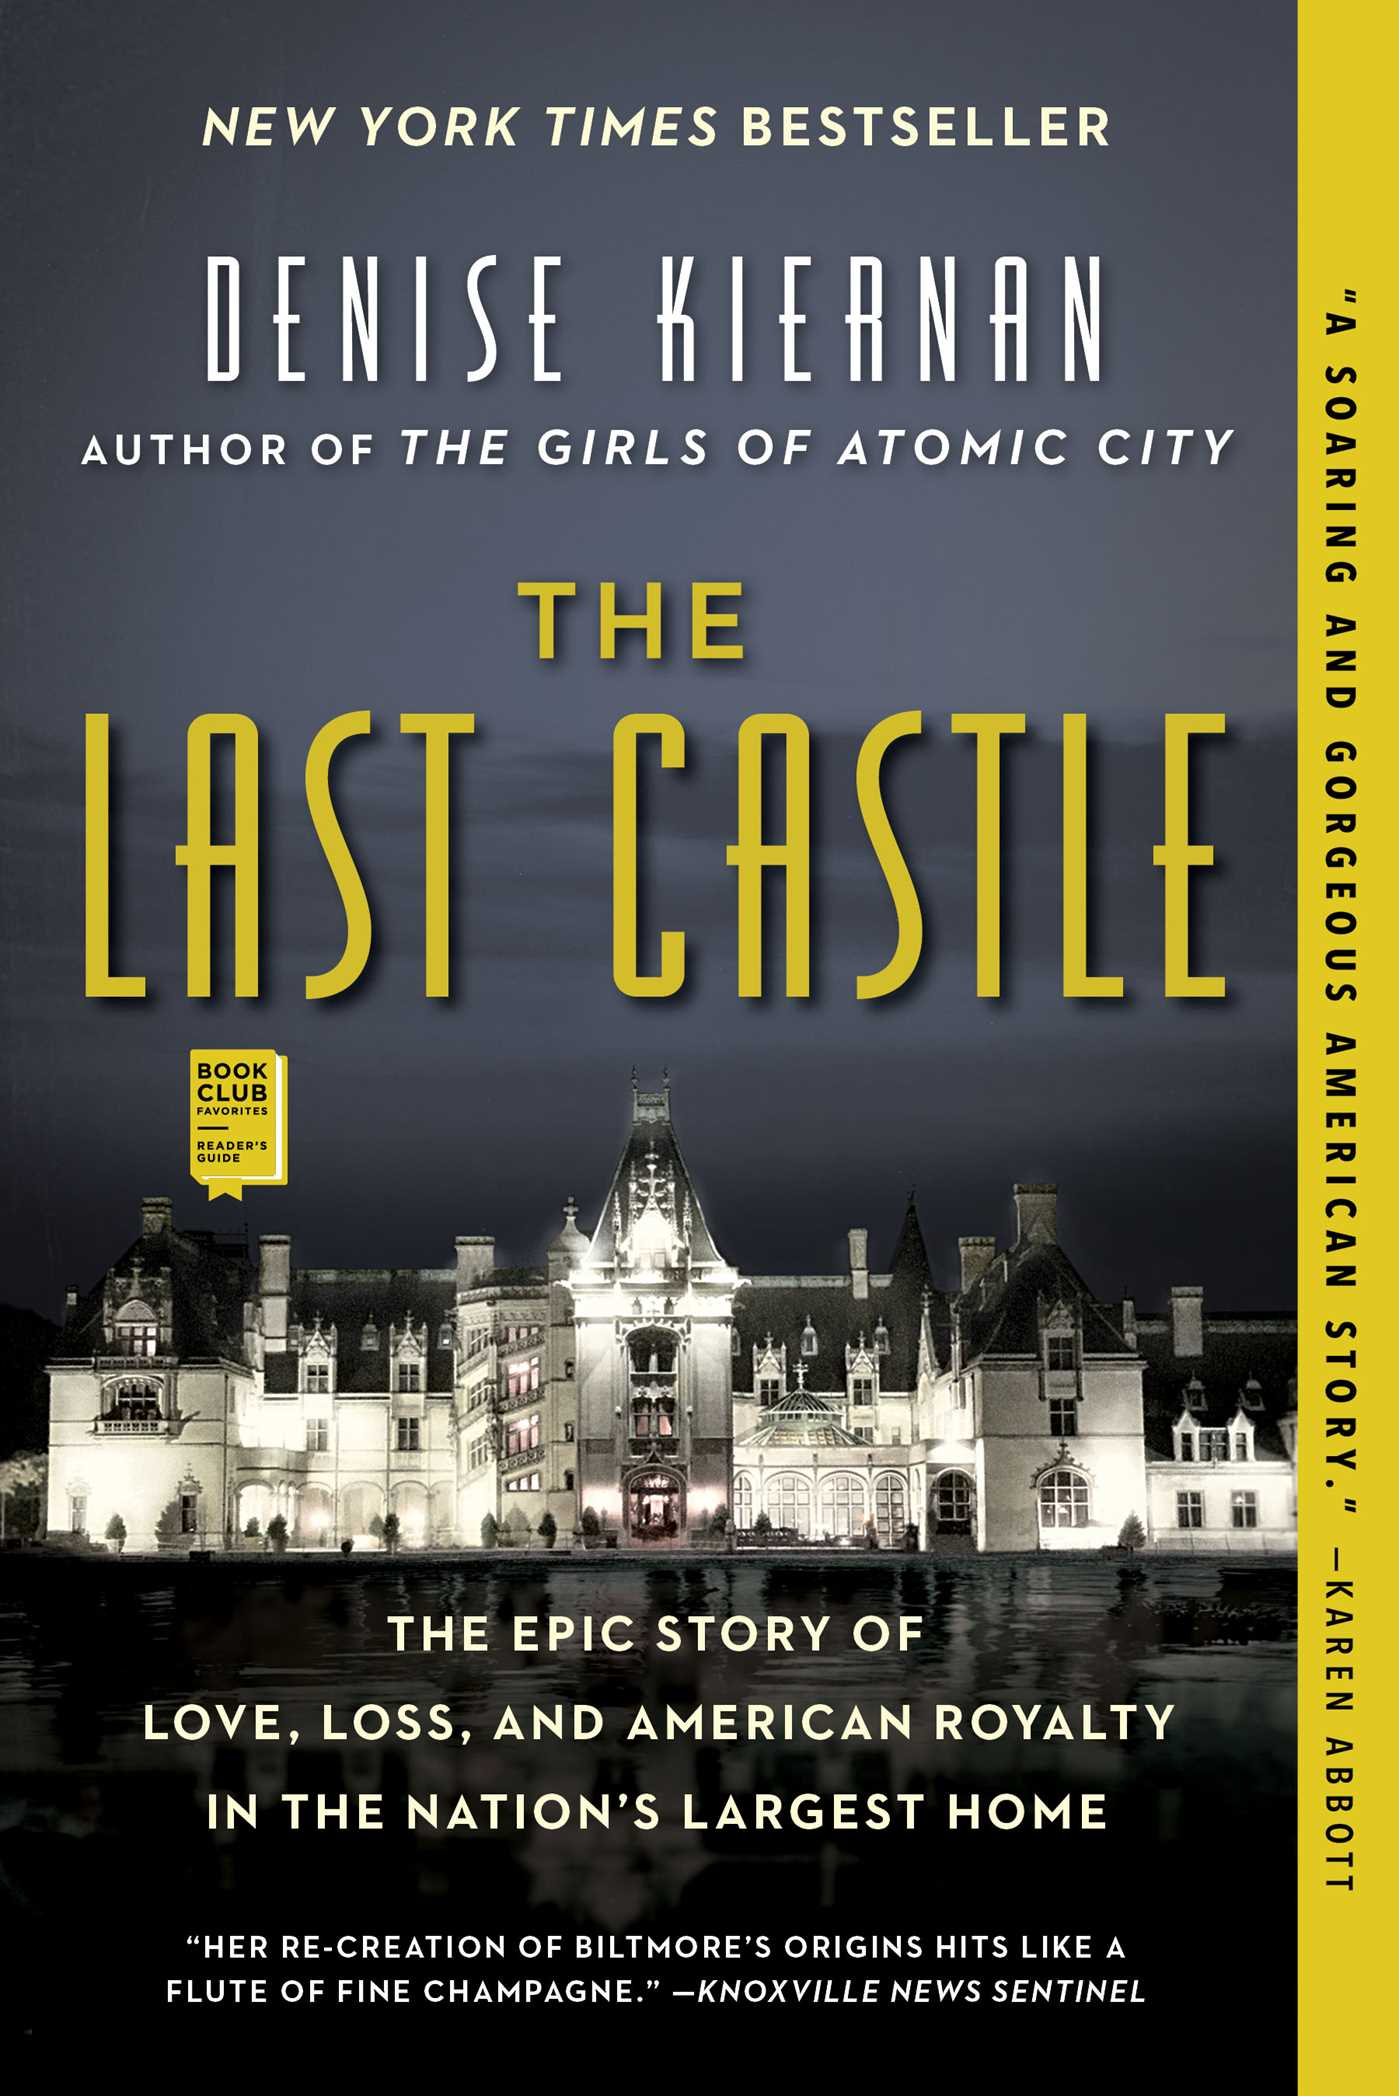 The last castle 9781476794051 hr